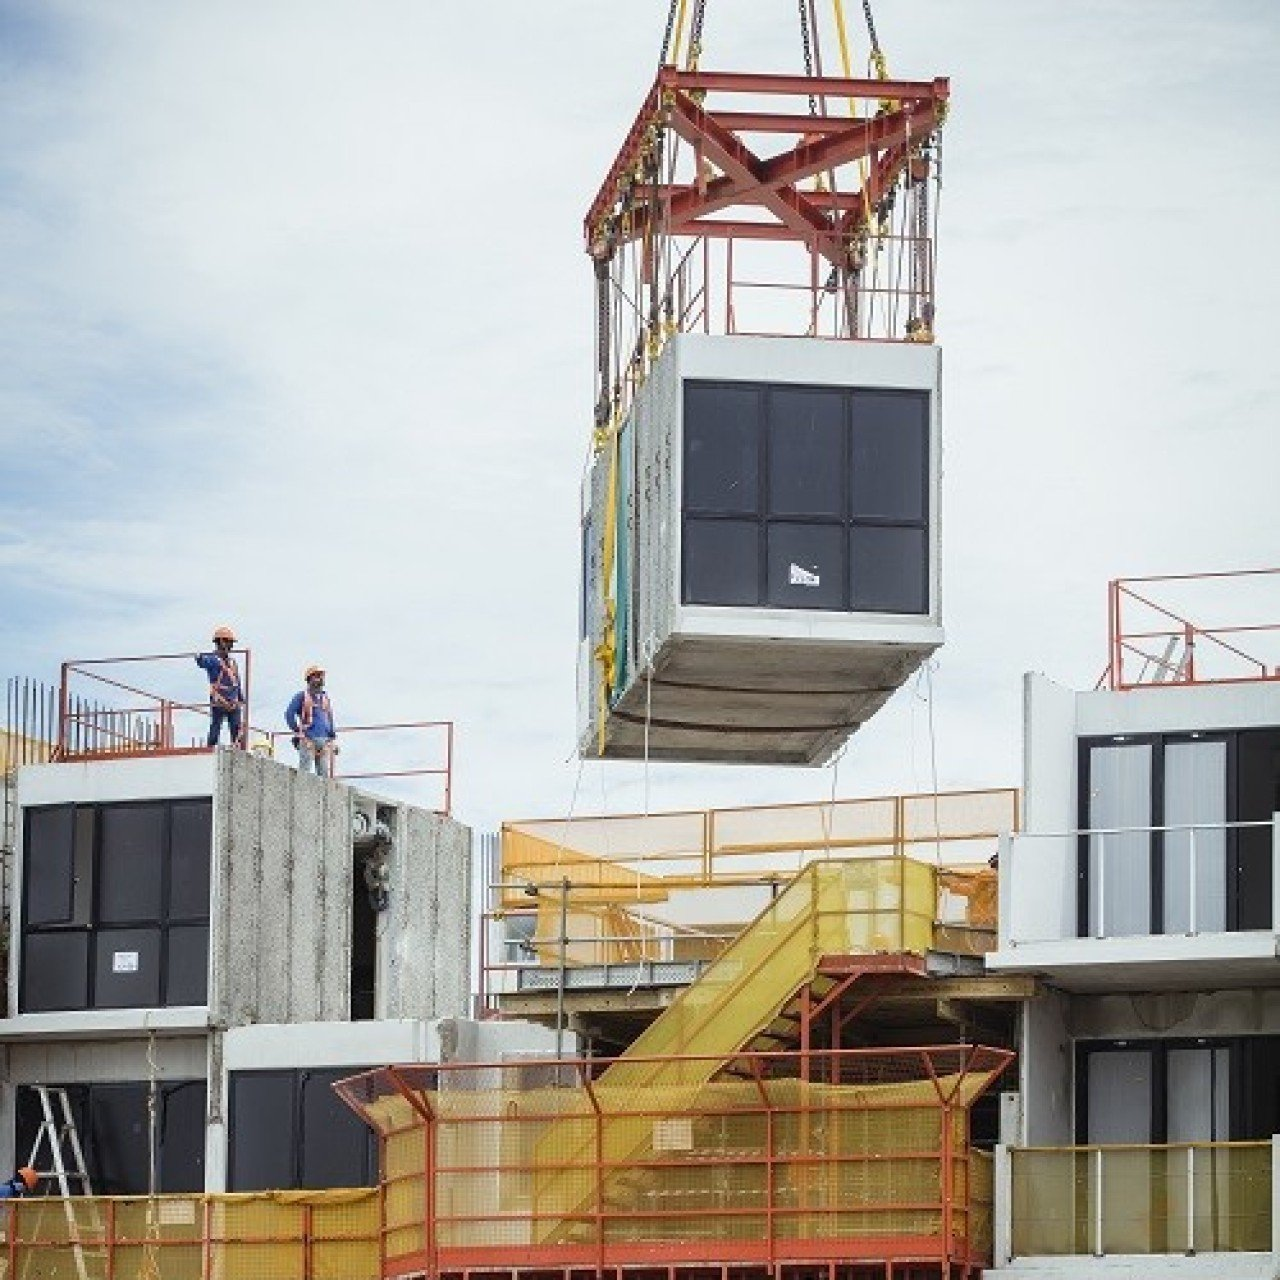 Singapore is embracing 'Lego style' prefabricated construction